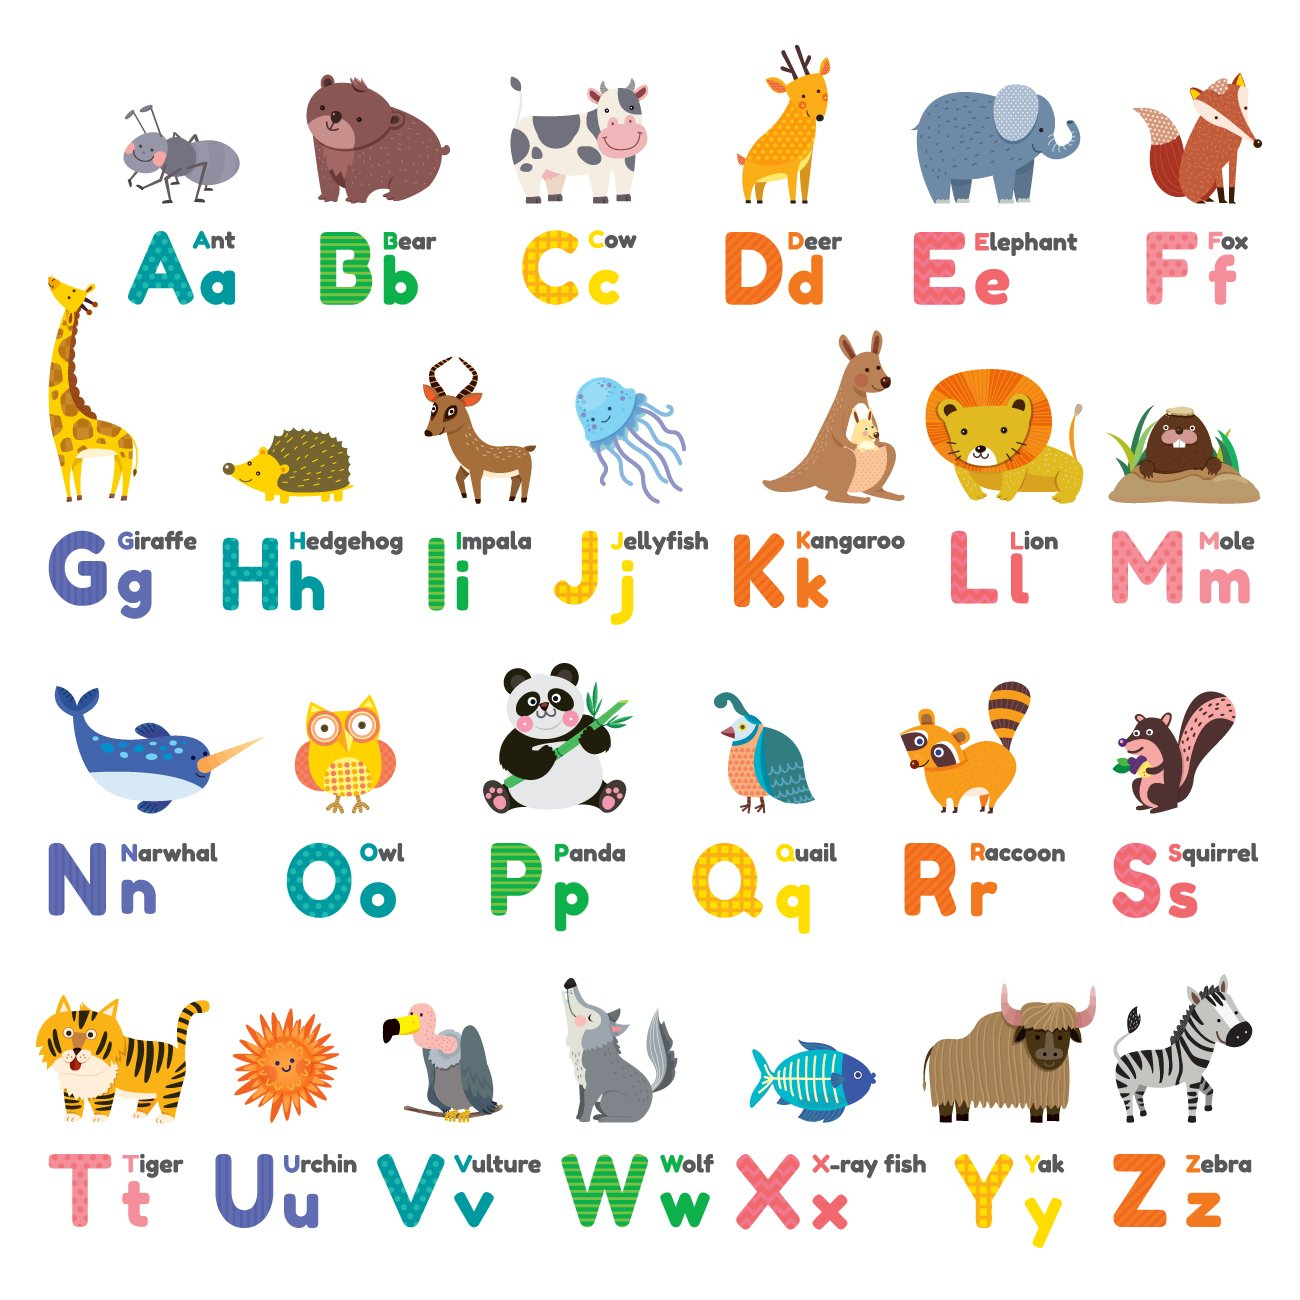 Decowall DW-1614 Colourful Animal Alphabet ABC Kids Wall Decals Wall Stickers Peel and Stick Removable Wall Stickers for Kids Nursery Bedroom Living Room by Decowall